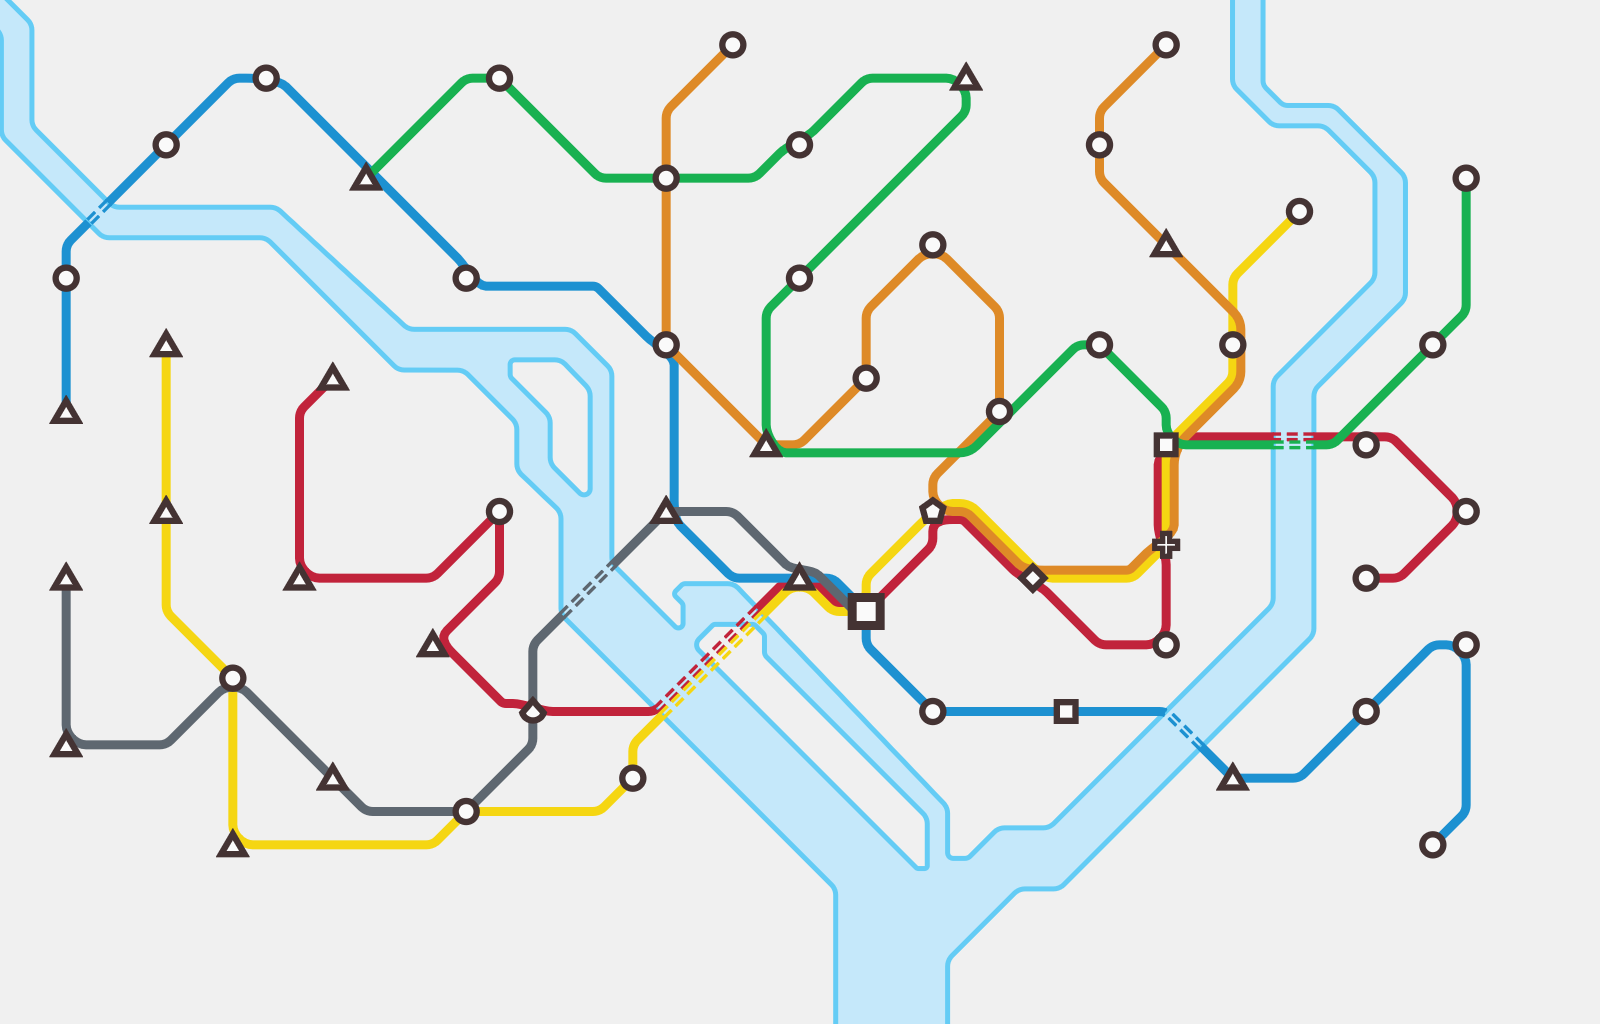 Washington, D.C. | Mini Metro Wiki | FANDOM powered by Wikia